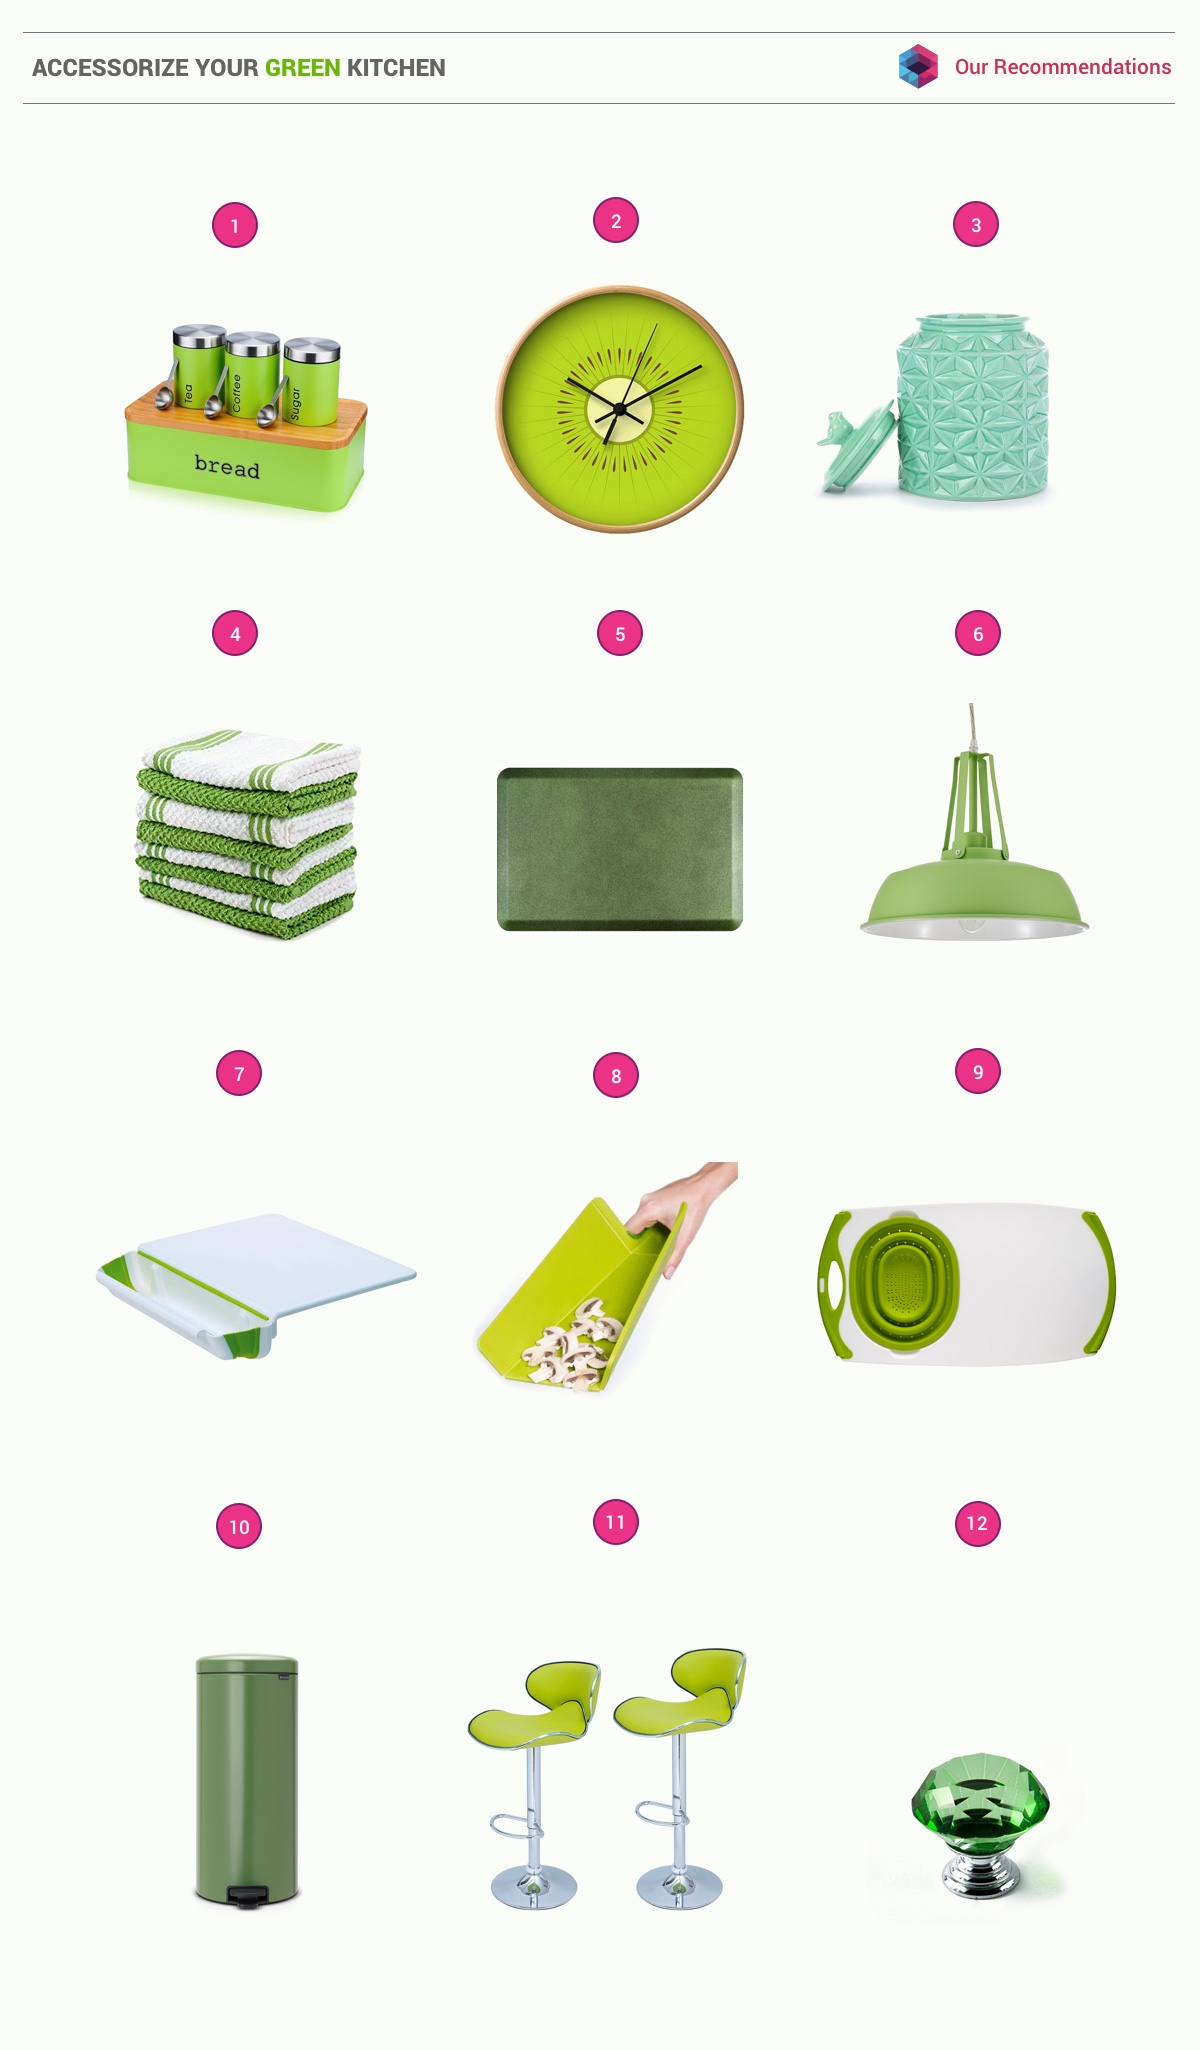 33 Gorgeous Green Kitchens And Ways To Accessorize Them images 30